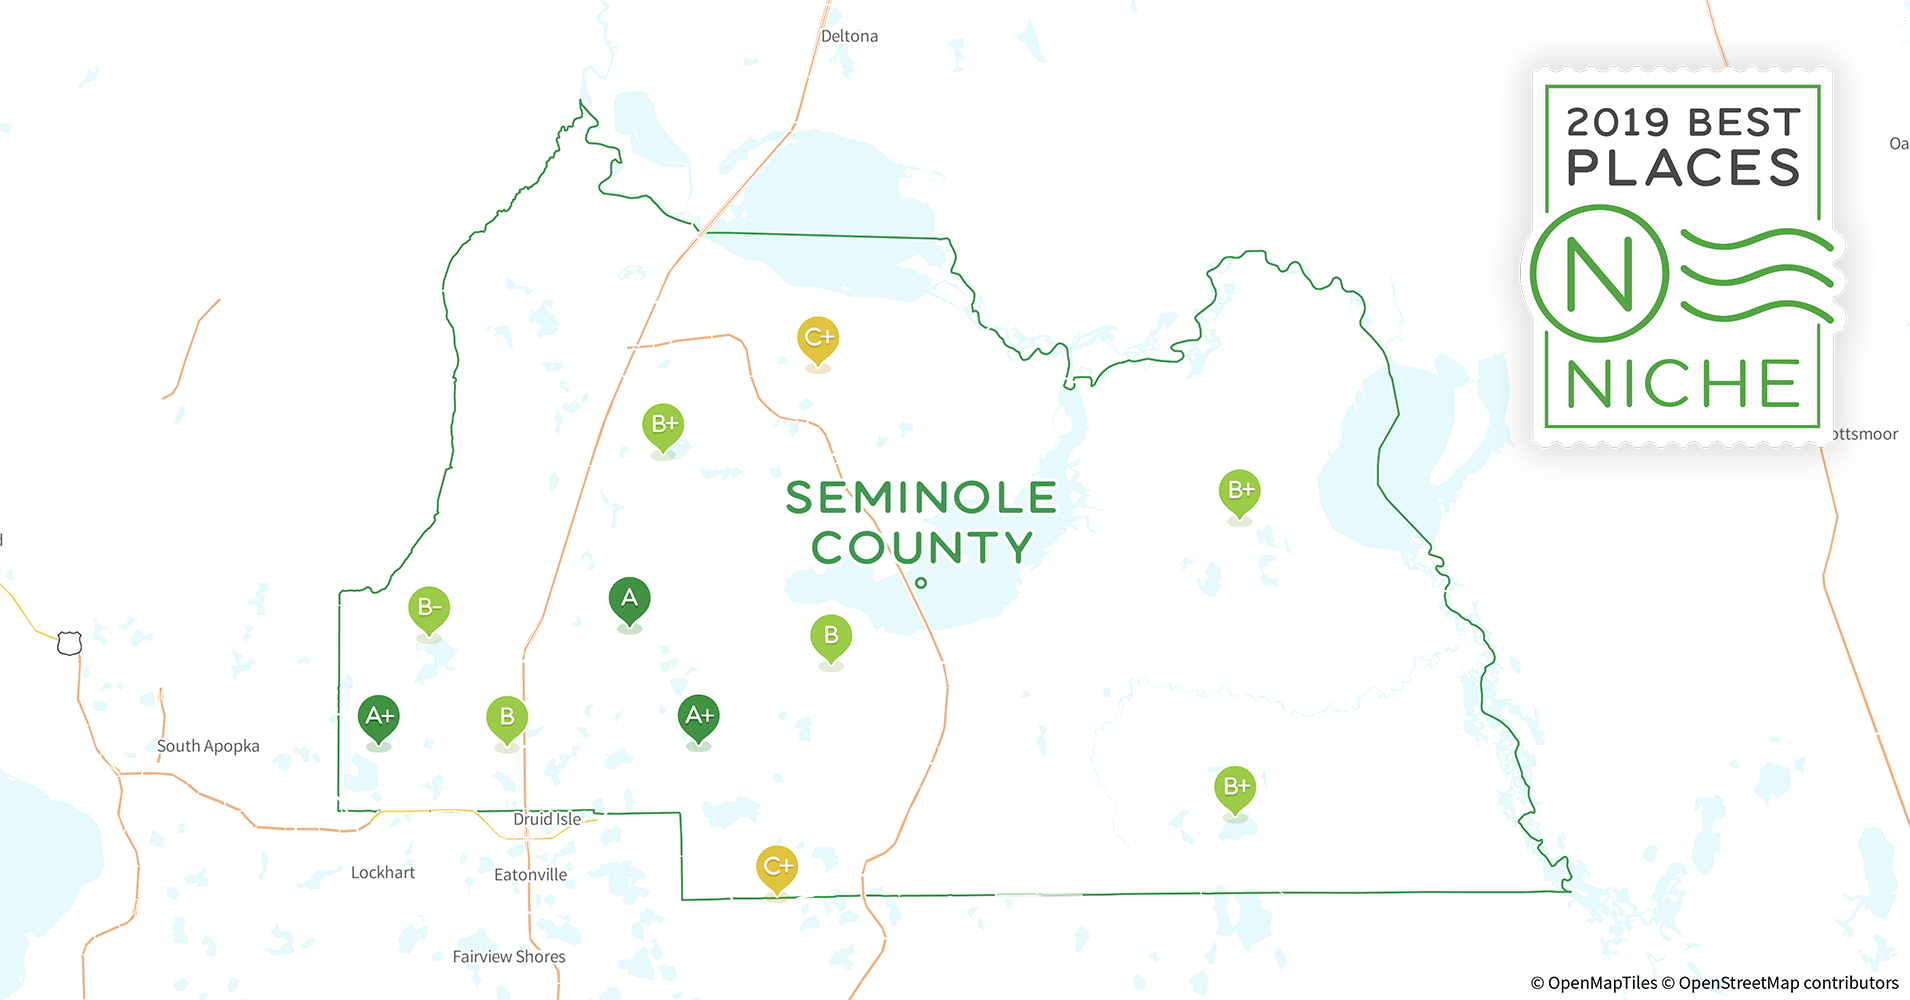 2019 Safe Places To Live In Seminole County, Fl - Niche - Map Of Seminole County Florida